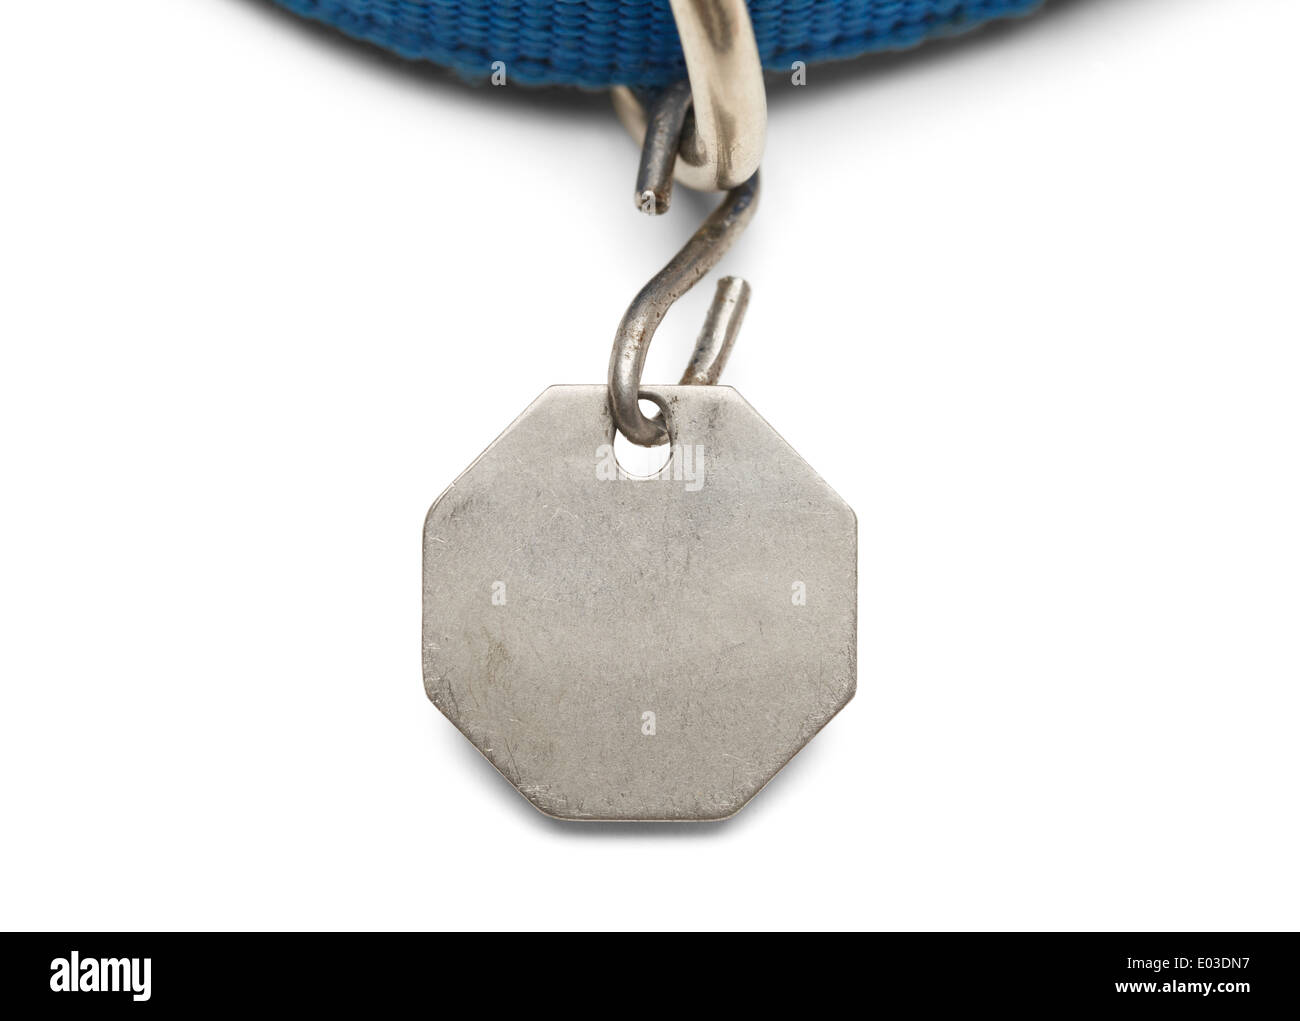 Blank Pet Dog Tag and Collar Isolated on White Background. Stock Photo